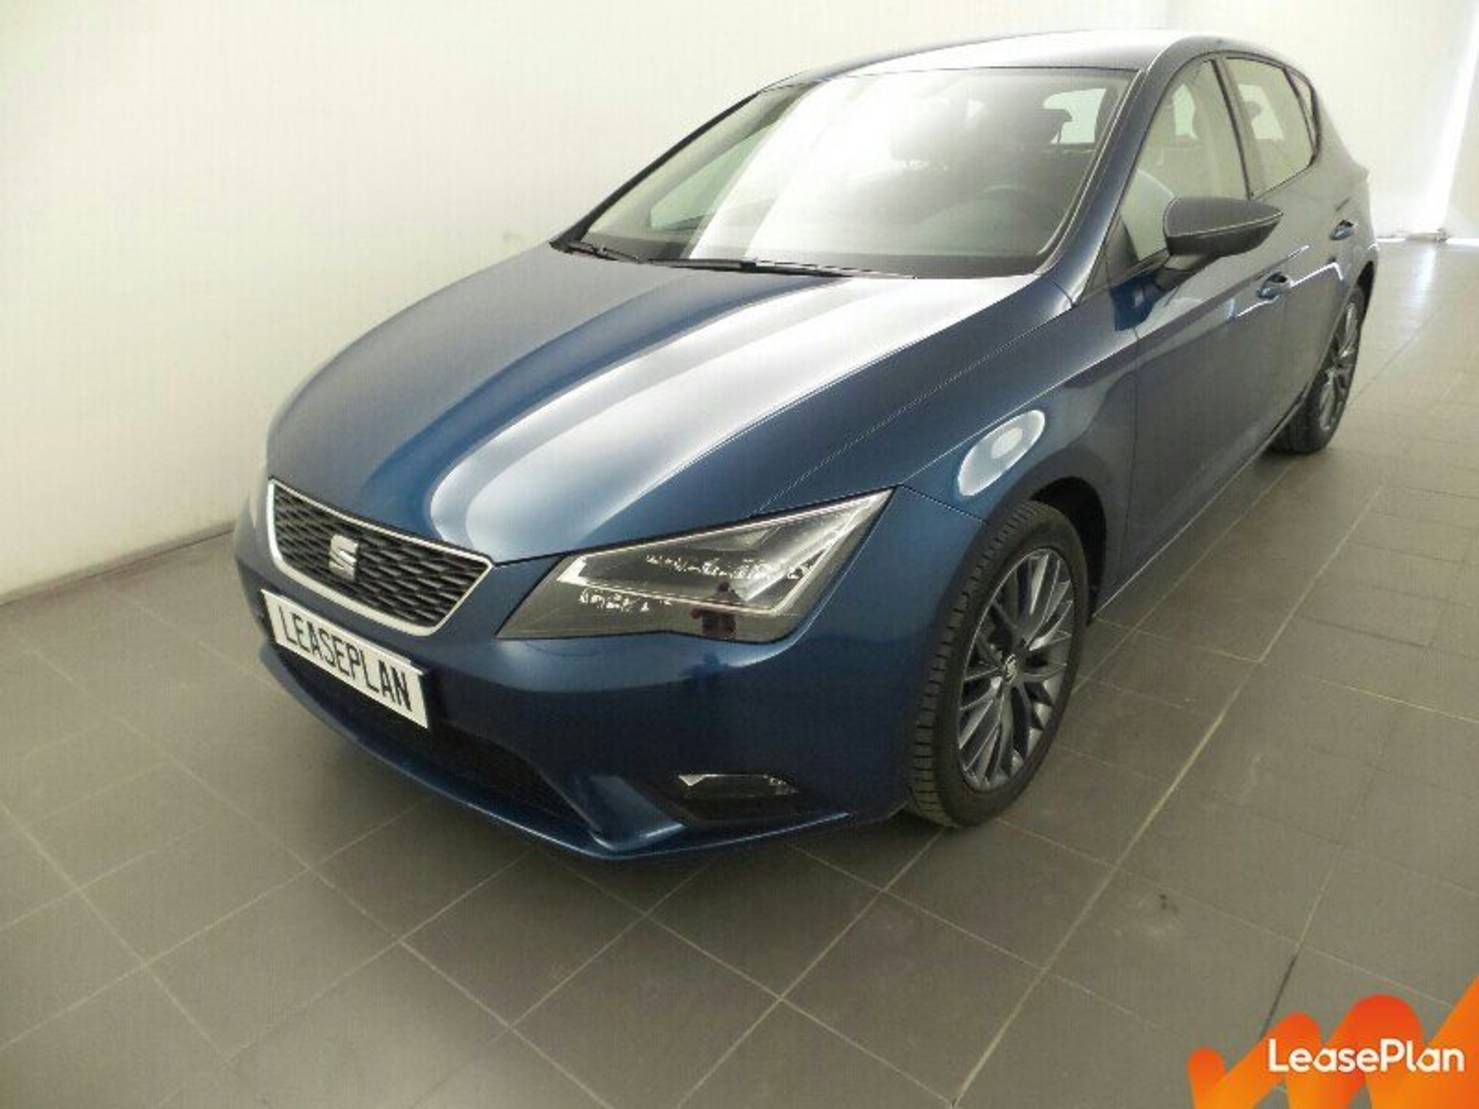 Seat Leon 1.6 TDI 110 Start/Stop, Connect DSG7 detail1